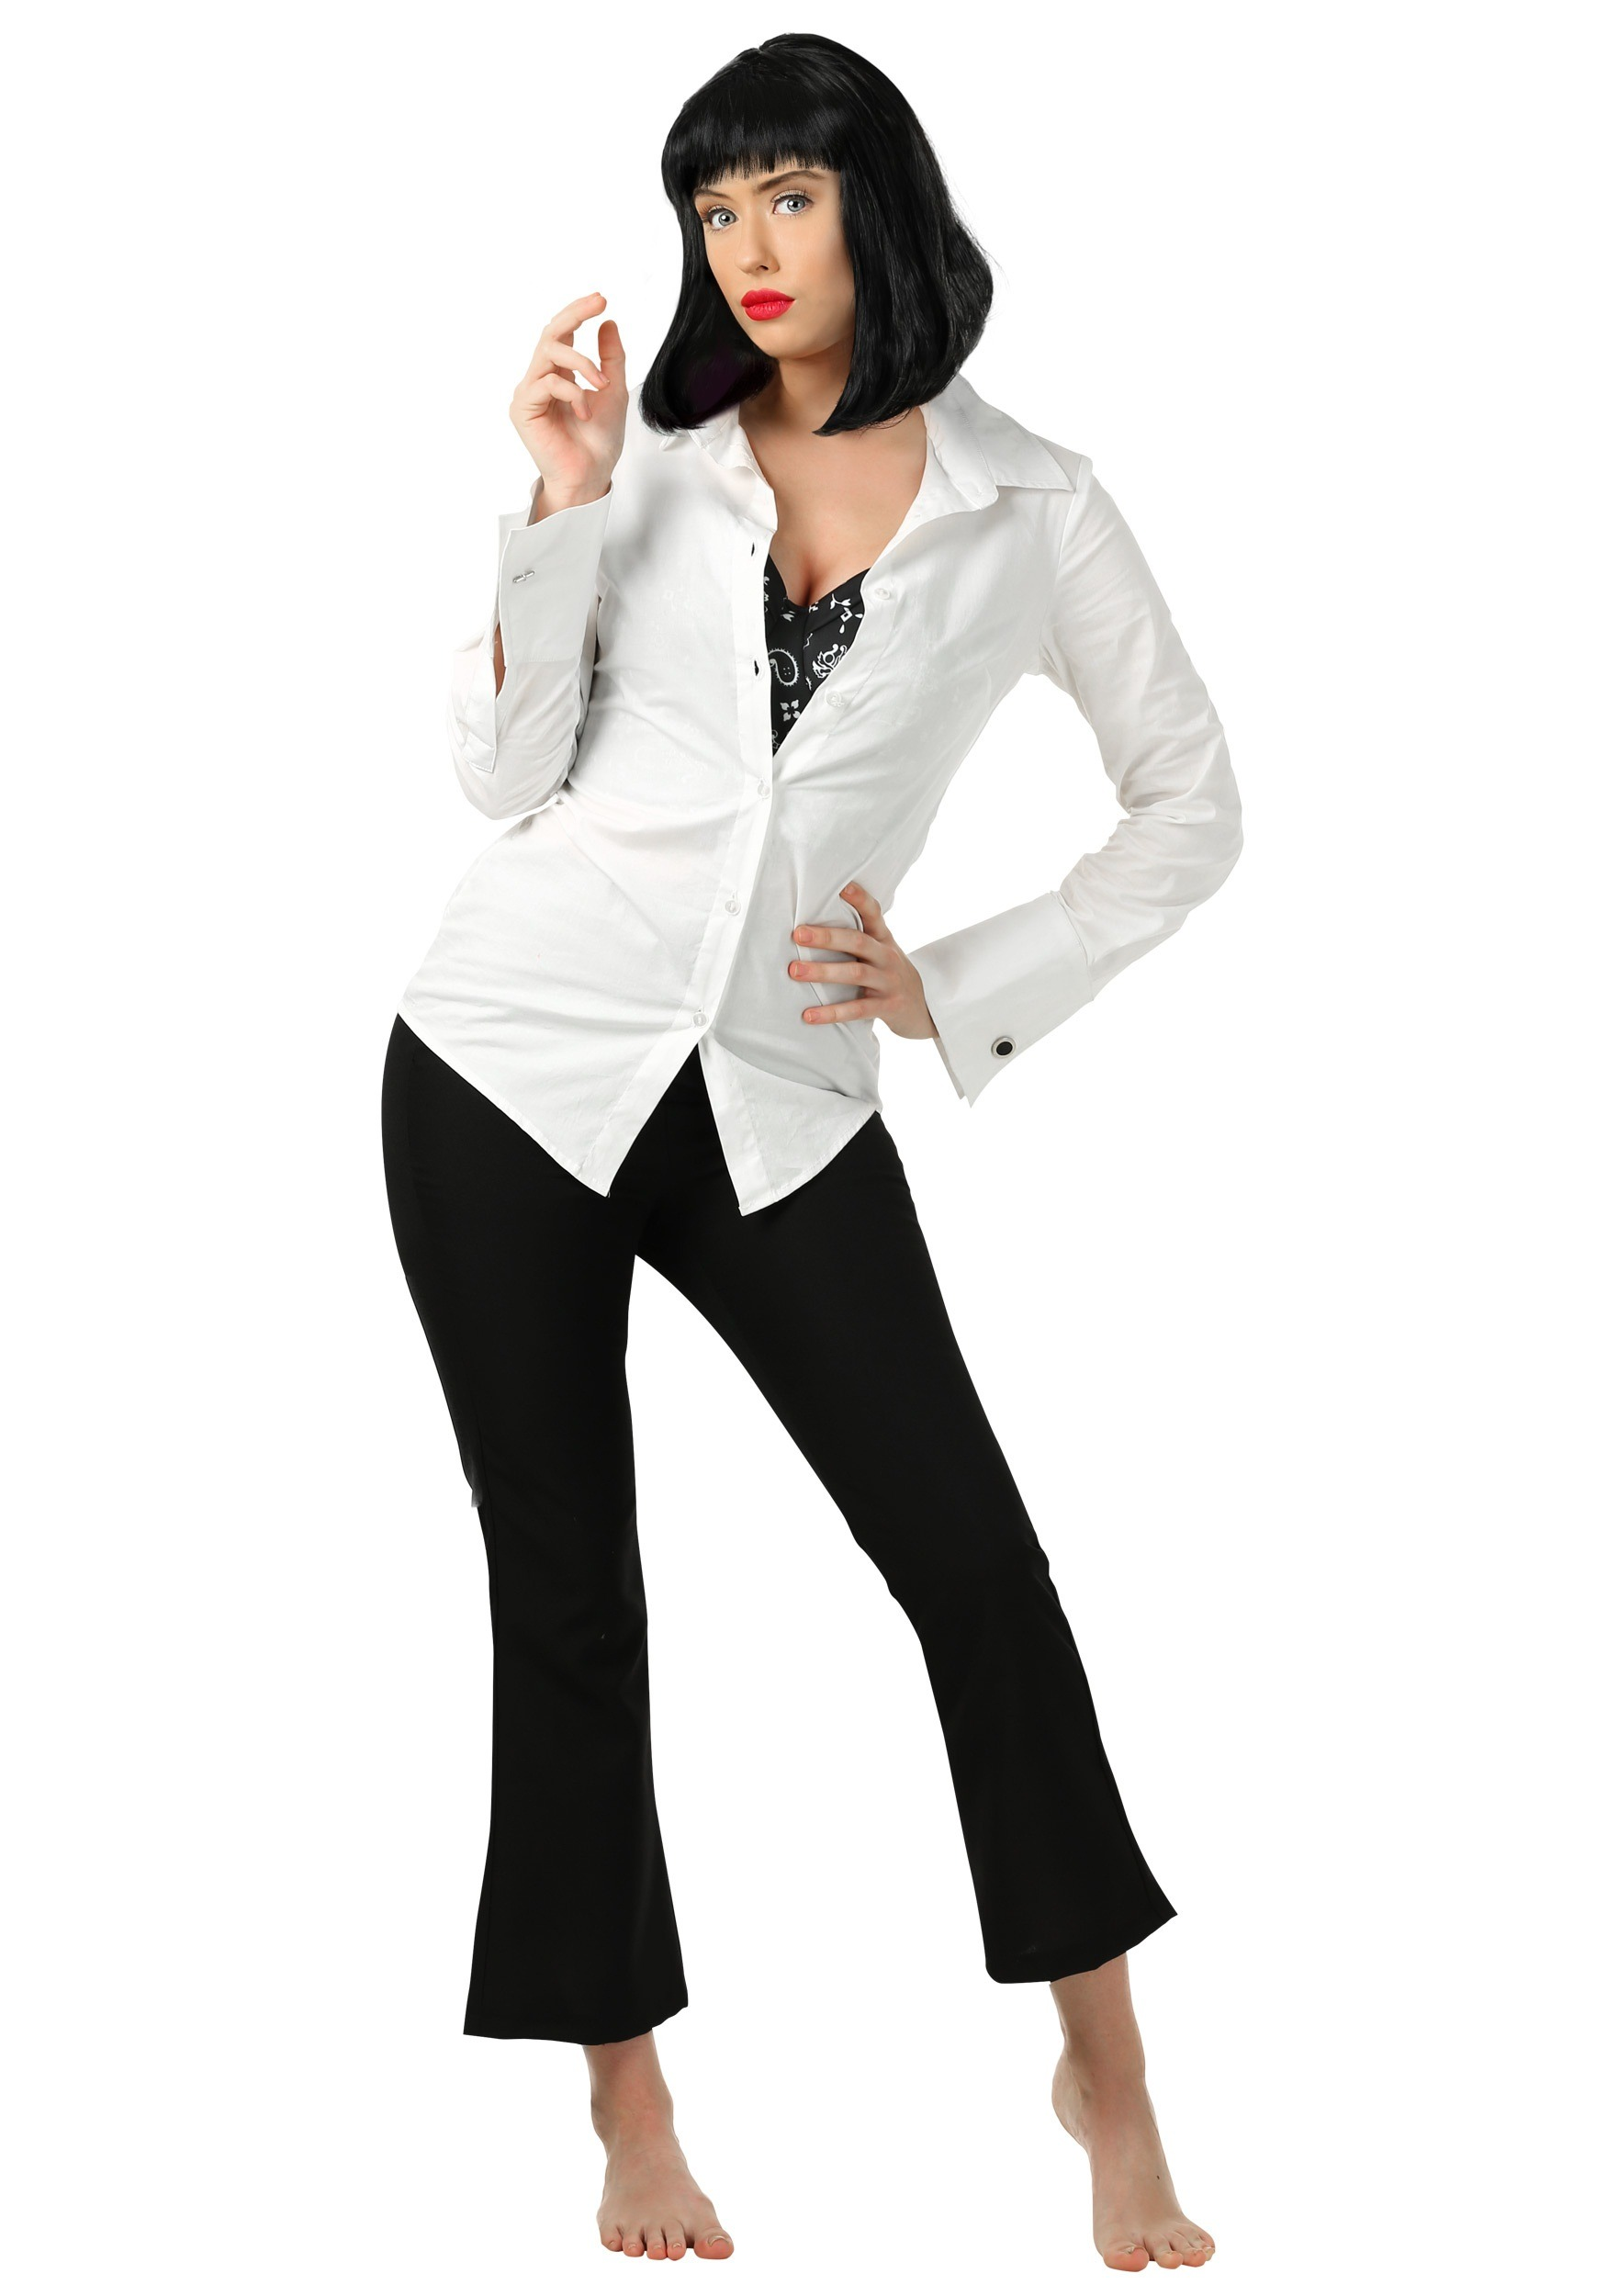 Adult Mia Wallace Pulp Fiction Costume FUN6636AD